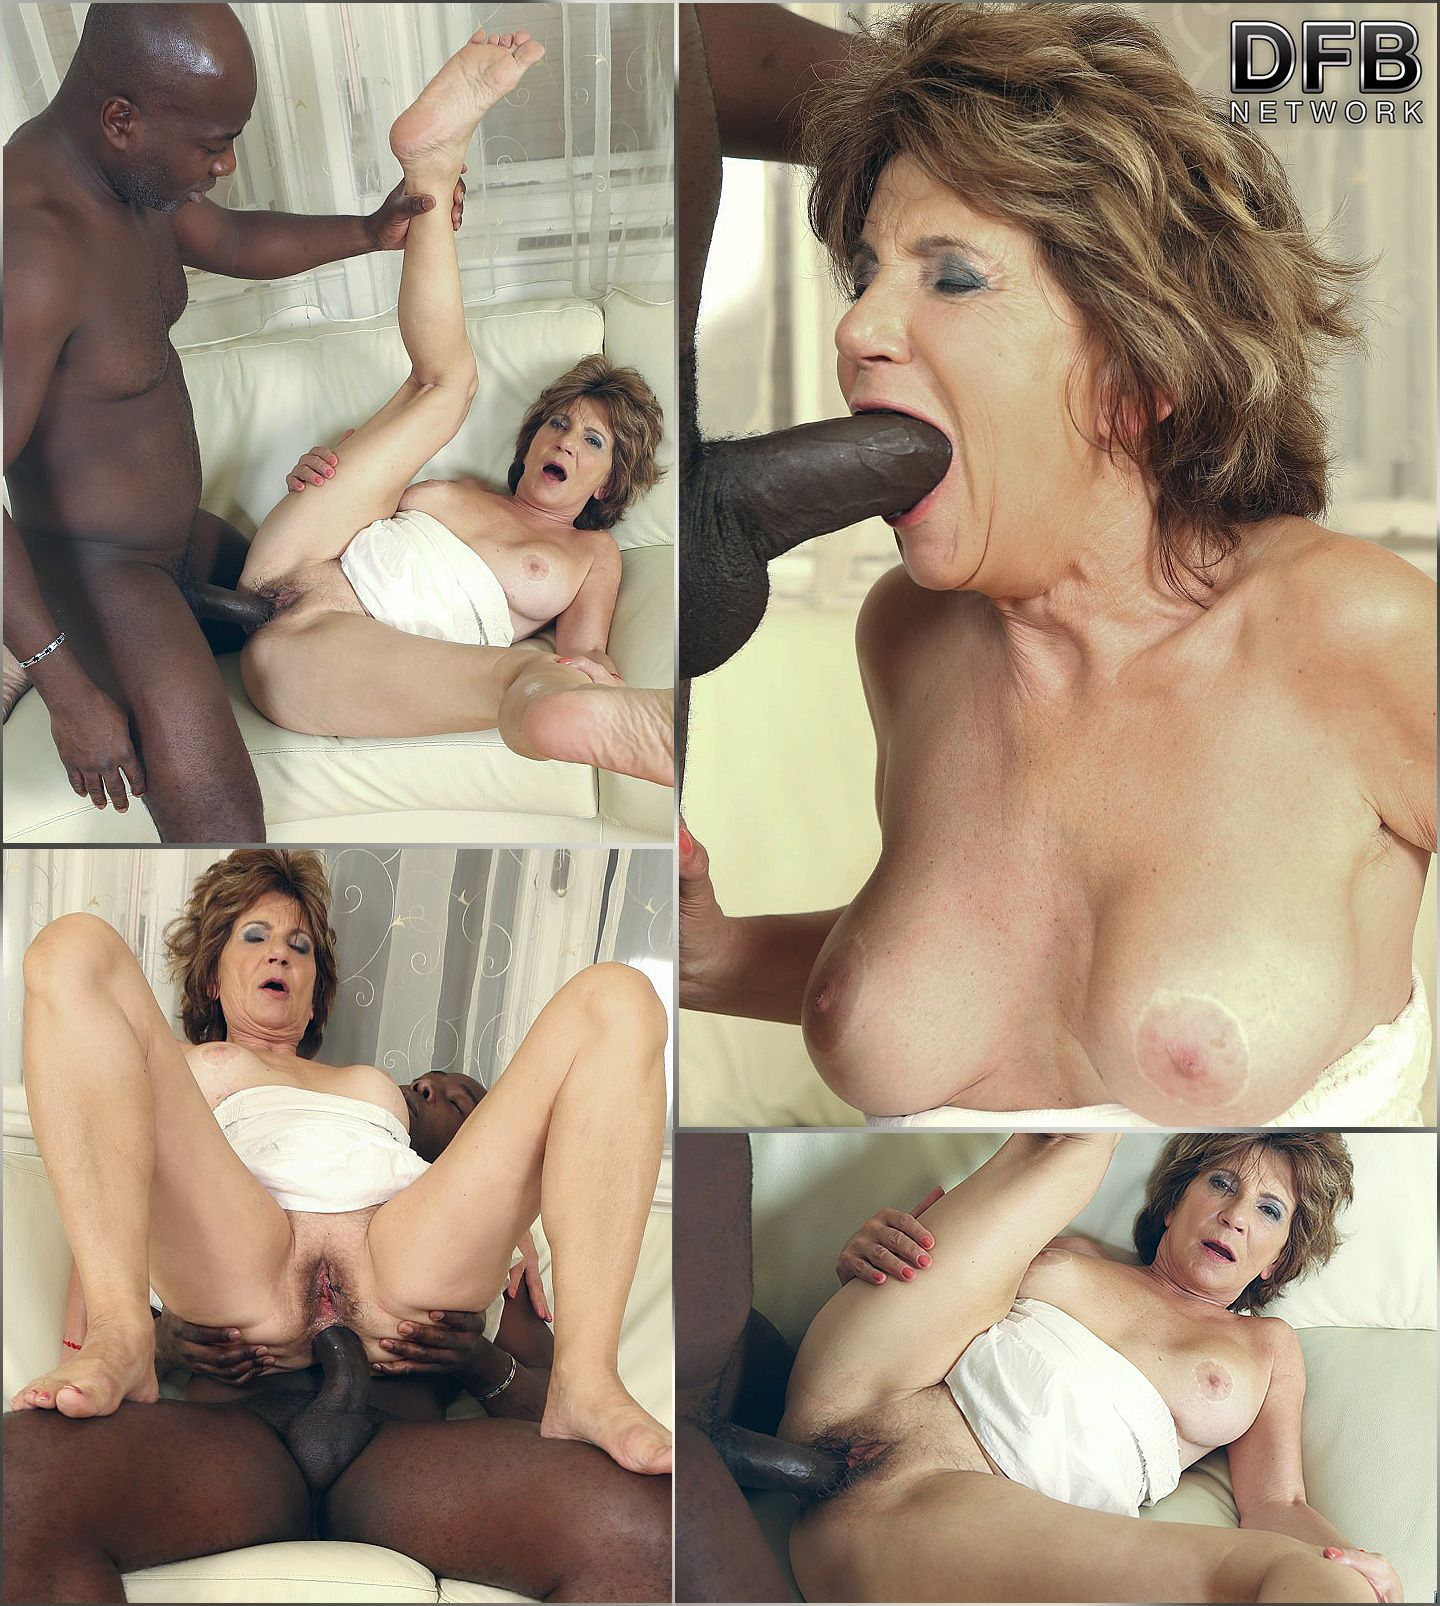 hot granny ass full with black dick - dfb network